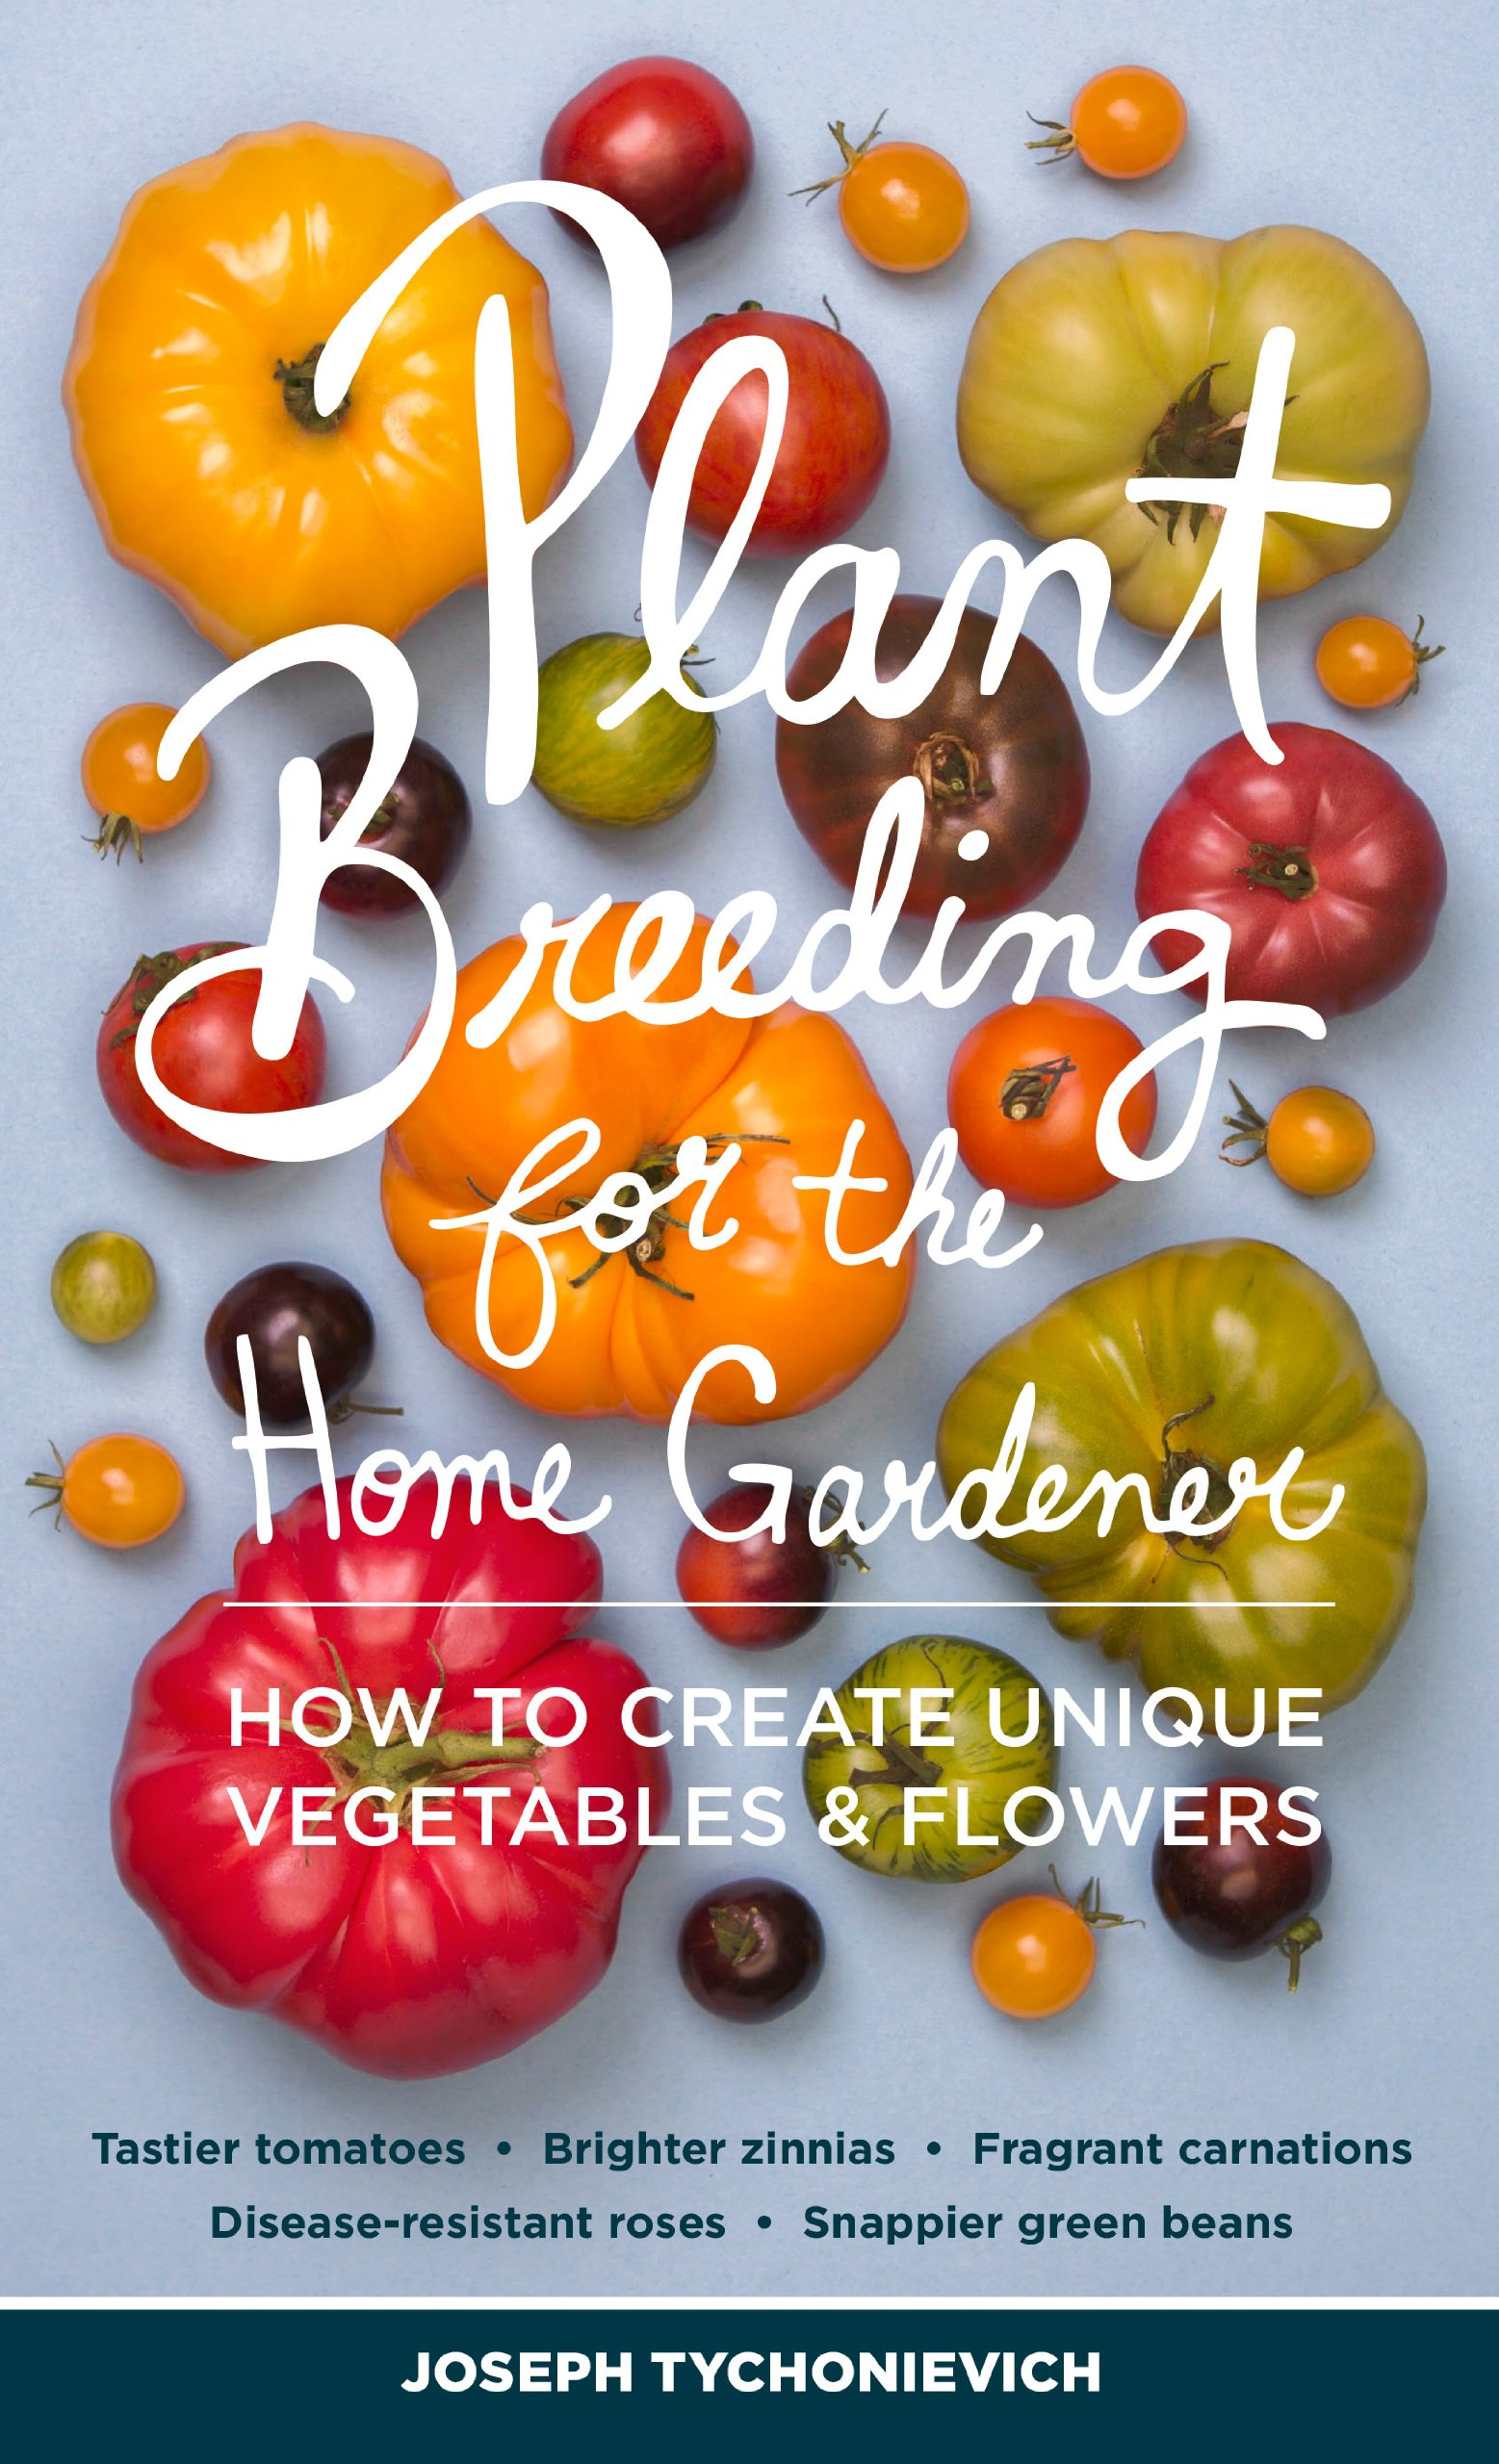 Home gardening vegetables - Plant Breeding For The Home Gardener How To Create Unique Vegetables And Flowers Joseph Tychonievich 9781604693645 Amazon Com Books